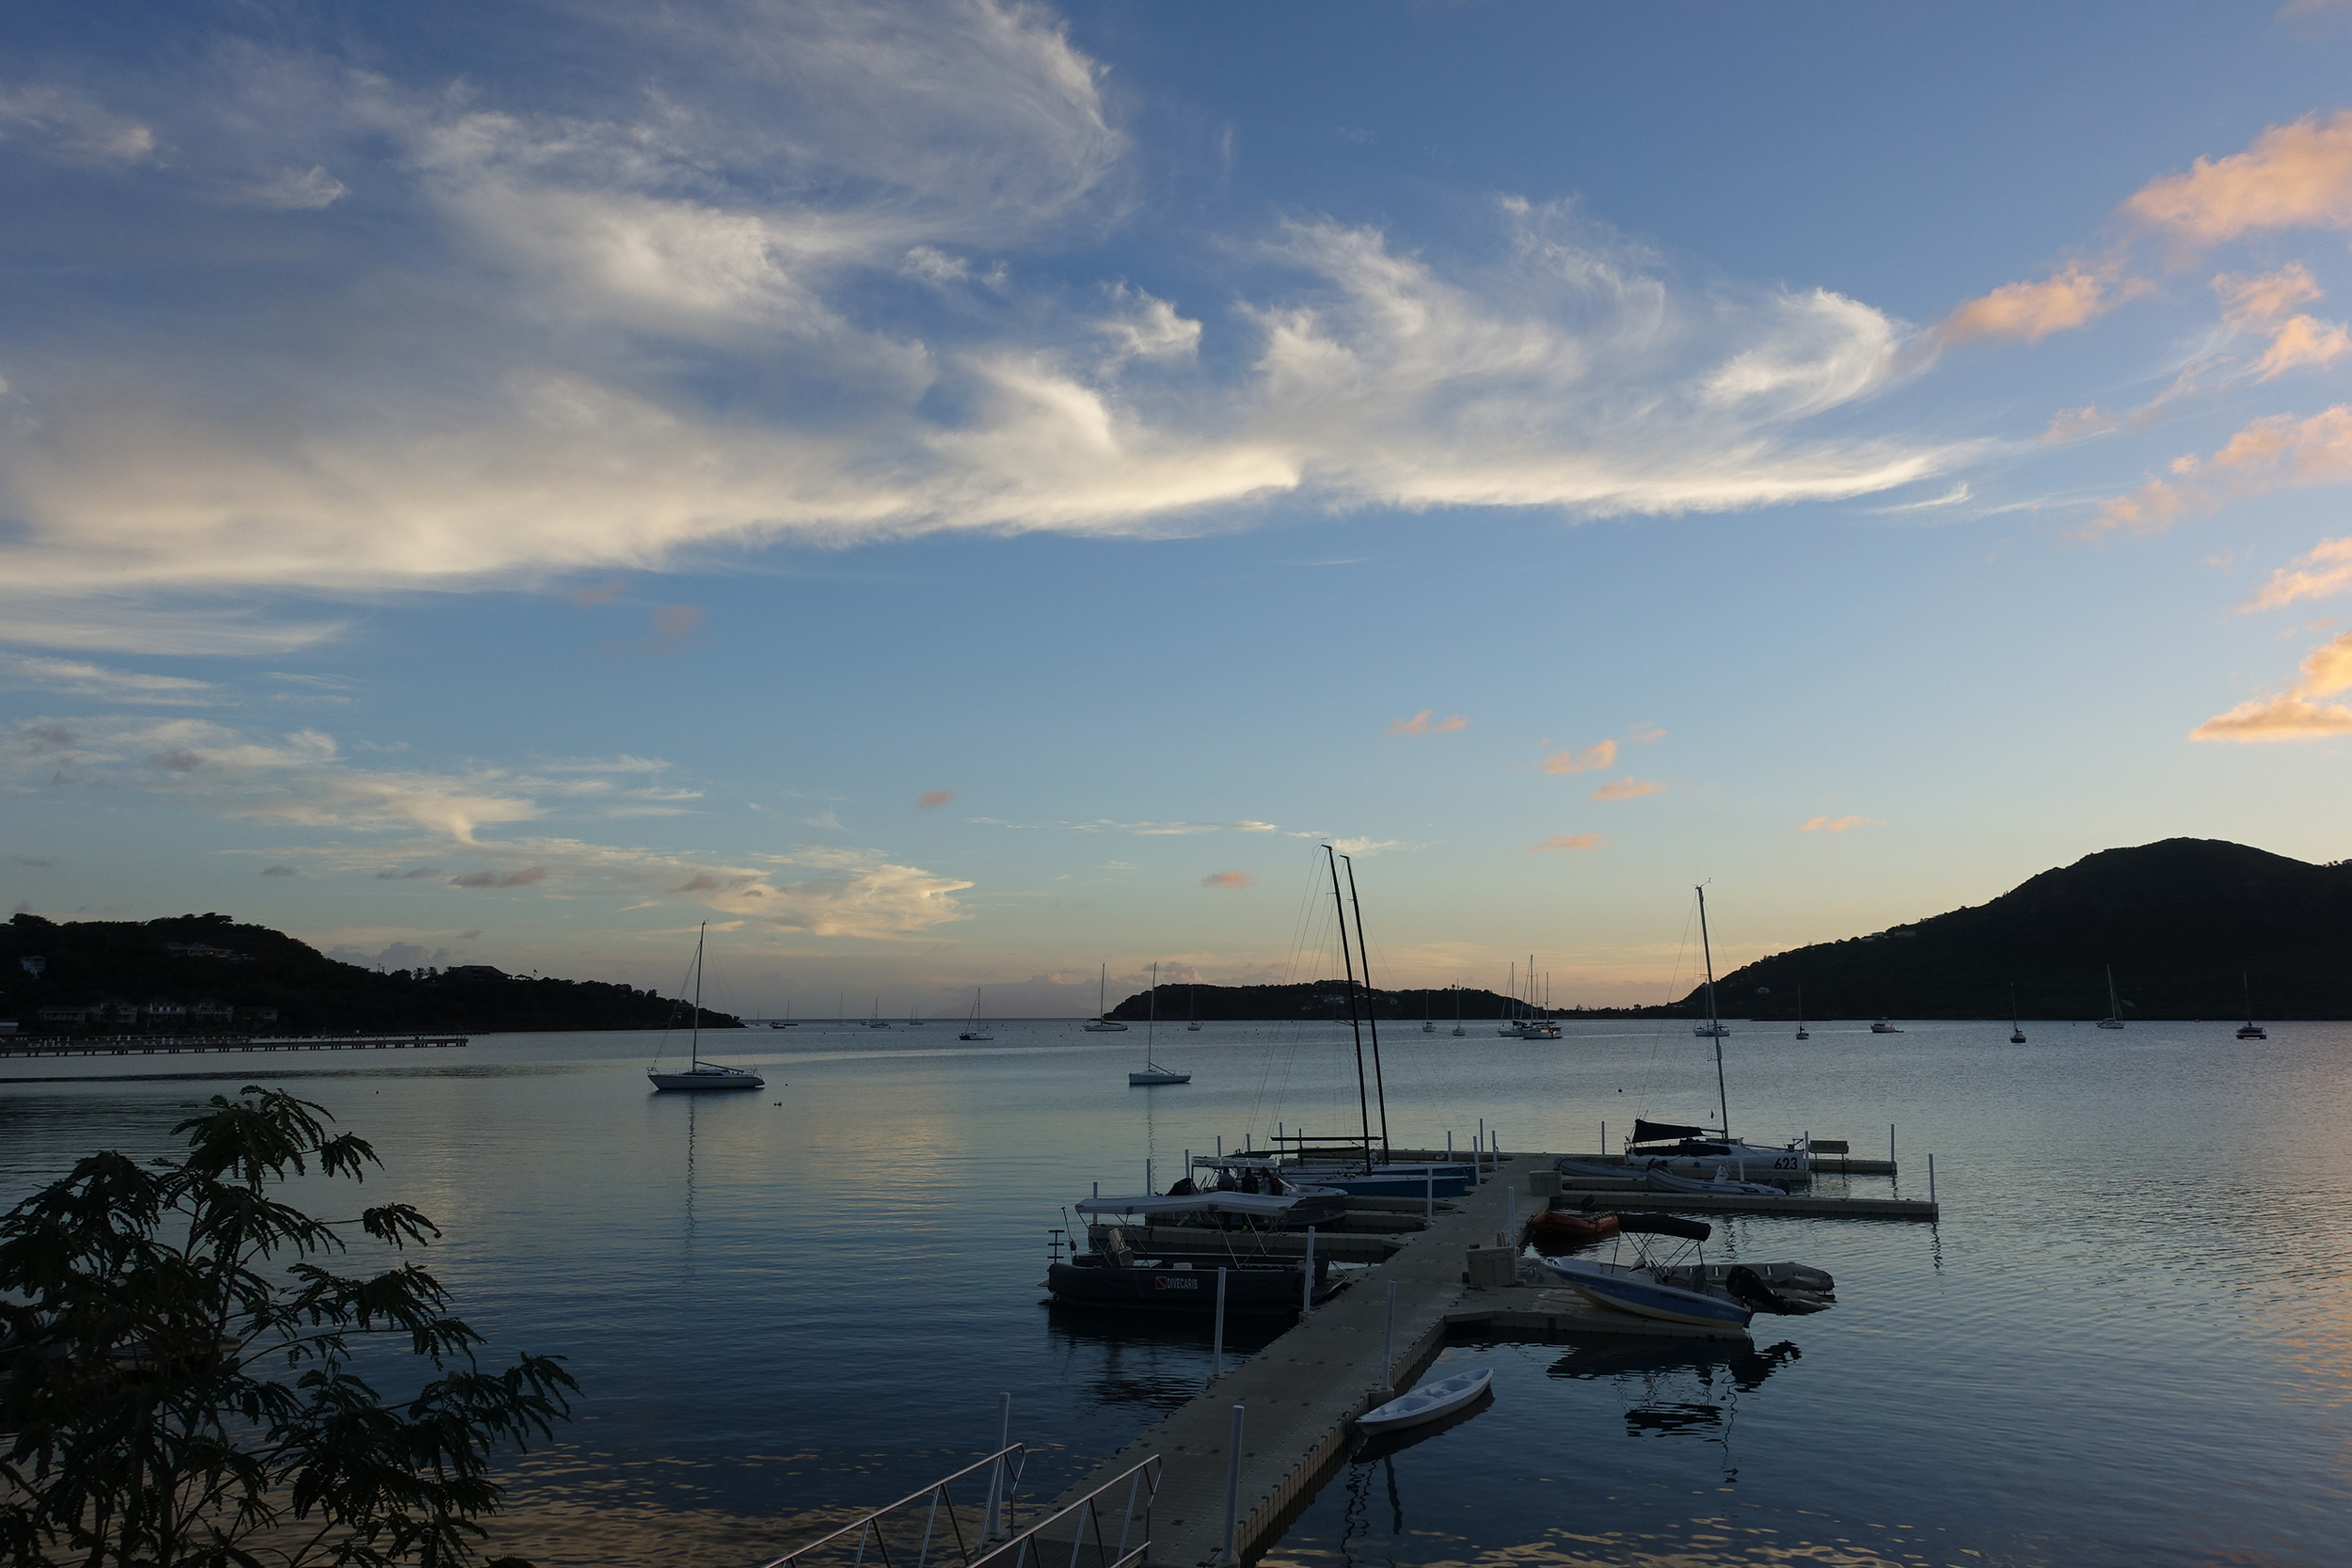 sunset at Falmouth harbour which adjoins English harbour